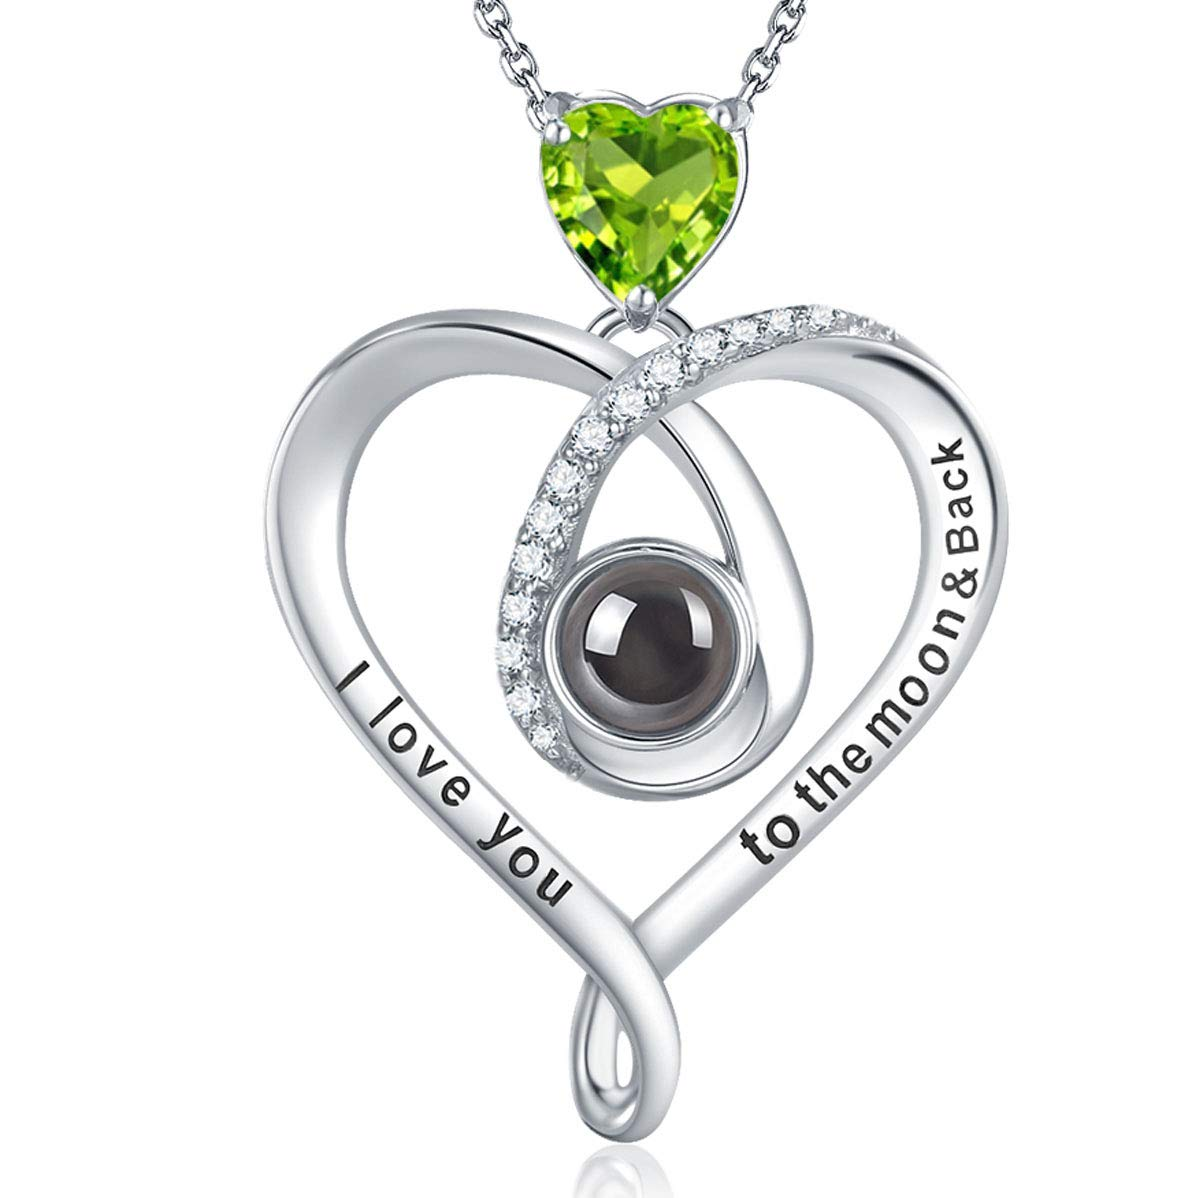 GinoMay August Birthstone Fine Necklace Gifts Sterling Silver Necklace I Love You to the Moon and Back Engraved Jewellery Green Peridot Half Moon Heart Pendant for Mom Wife Daughter Girls